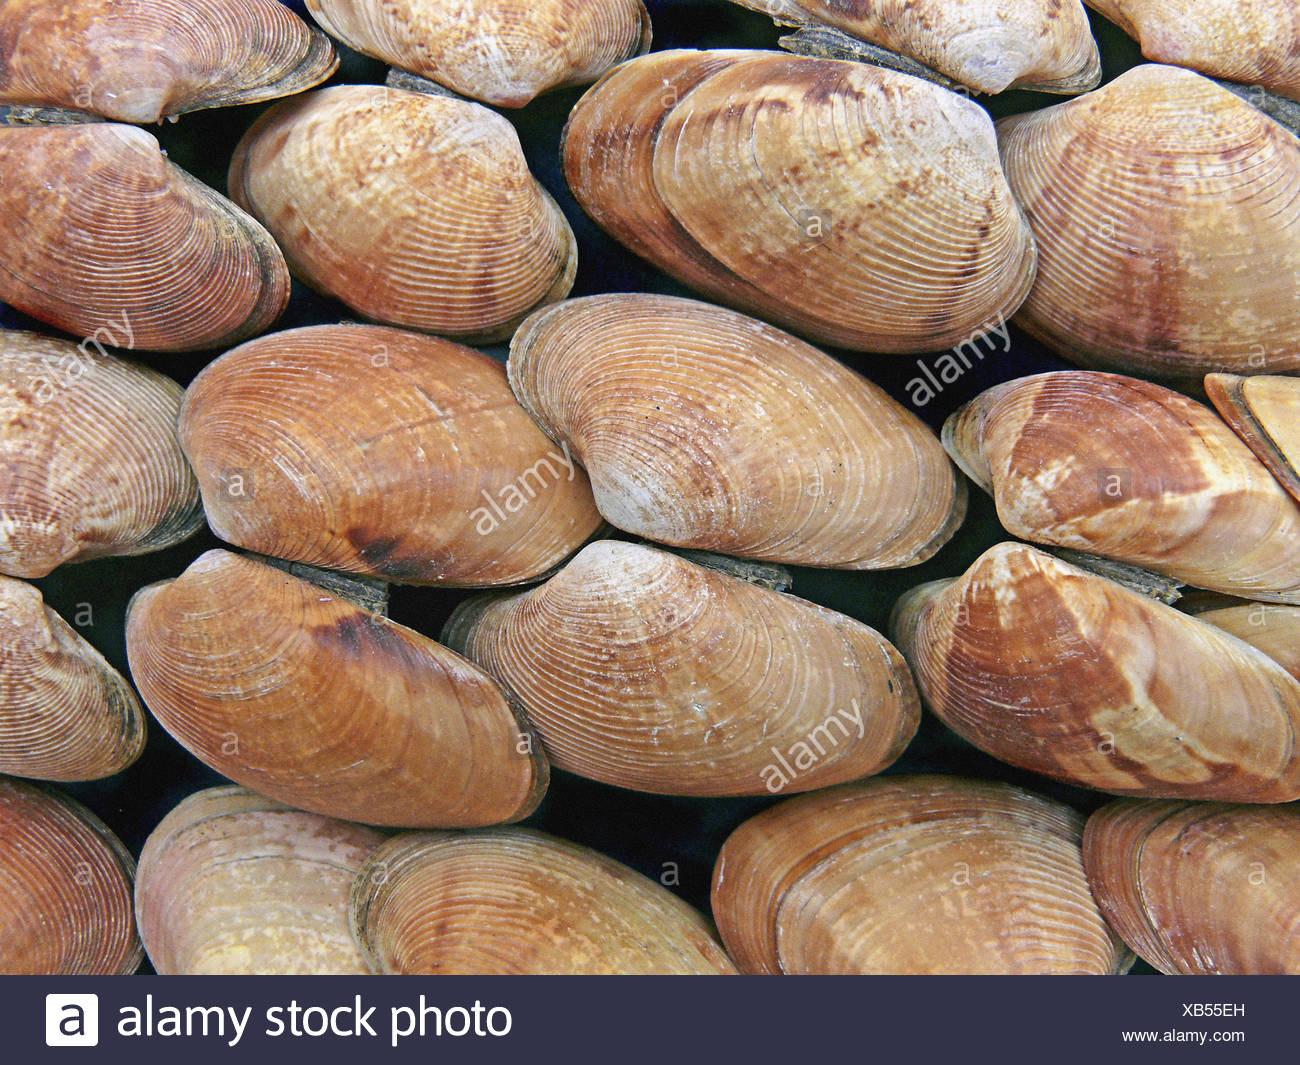 Clams, Class: Bivalvia, Representative mollusks. Bivalves have a shell with two halves. Filter feeders, they take in food and Stock Photo